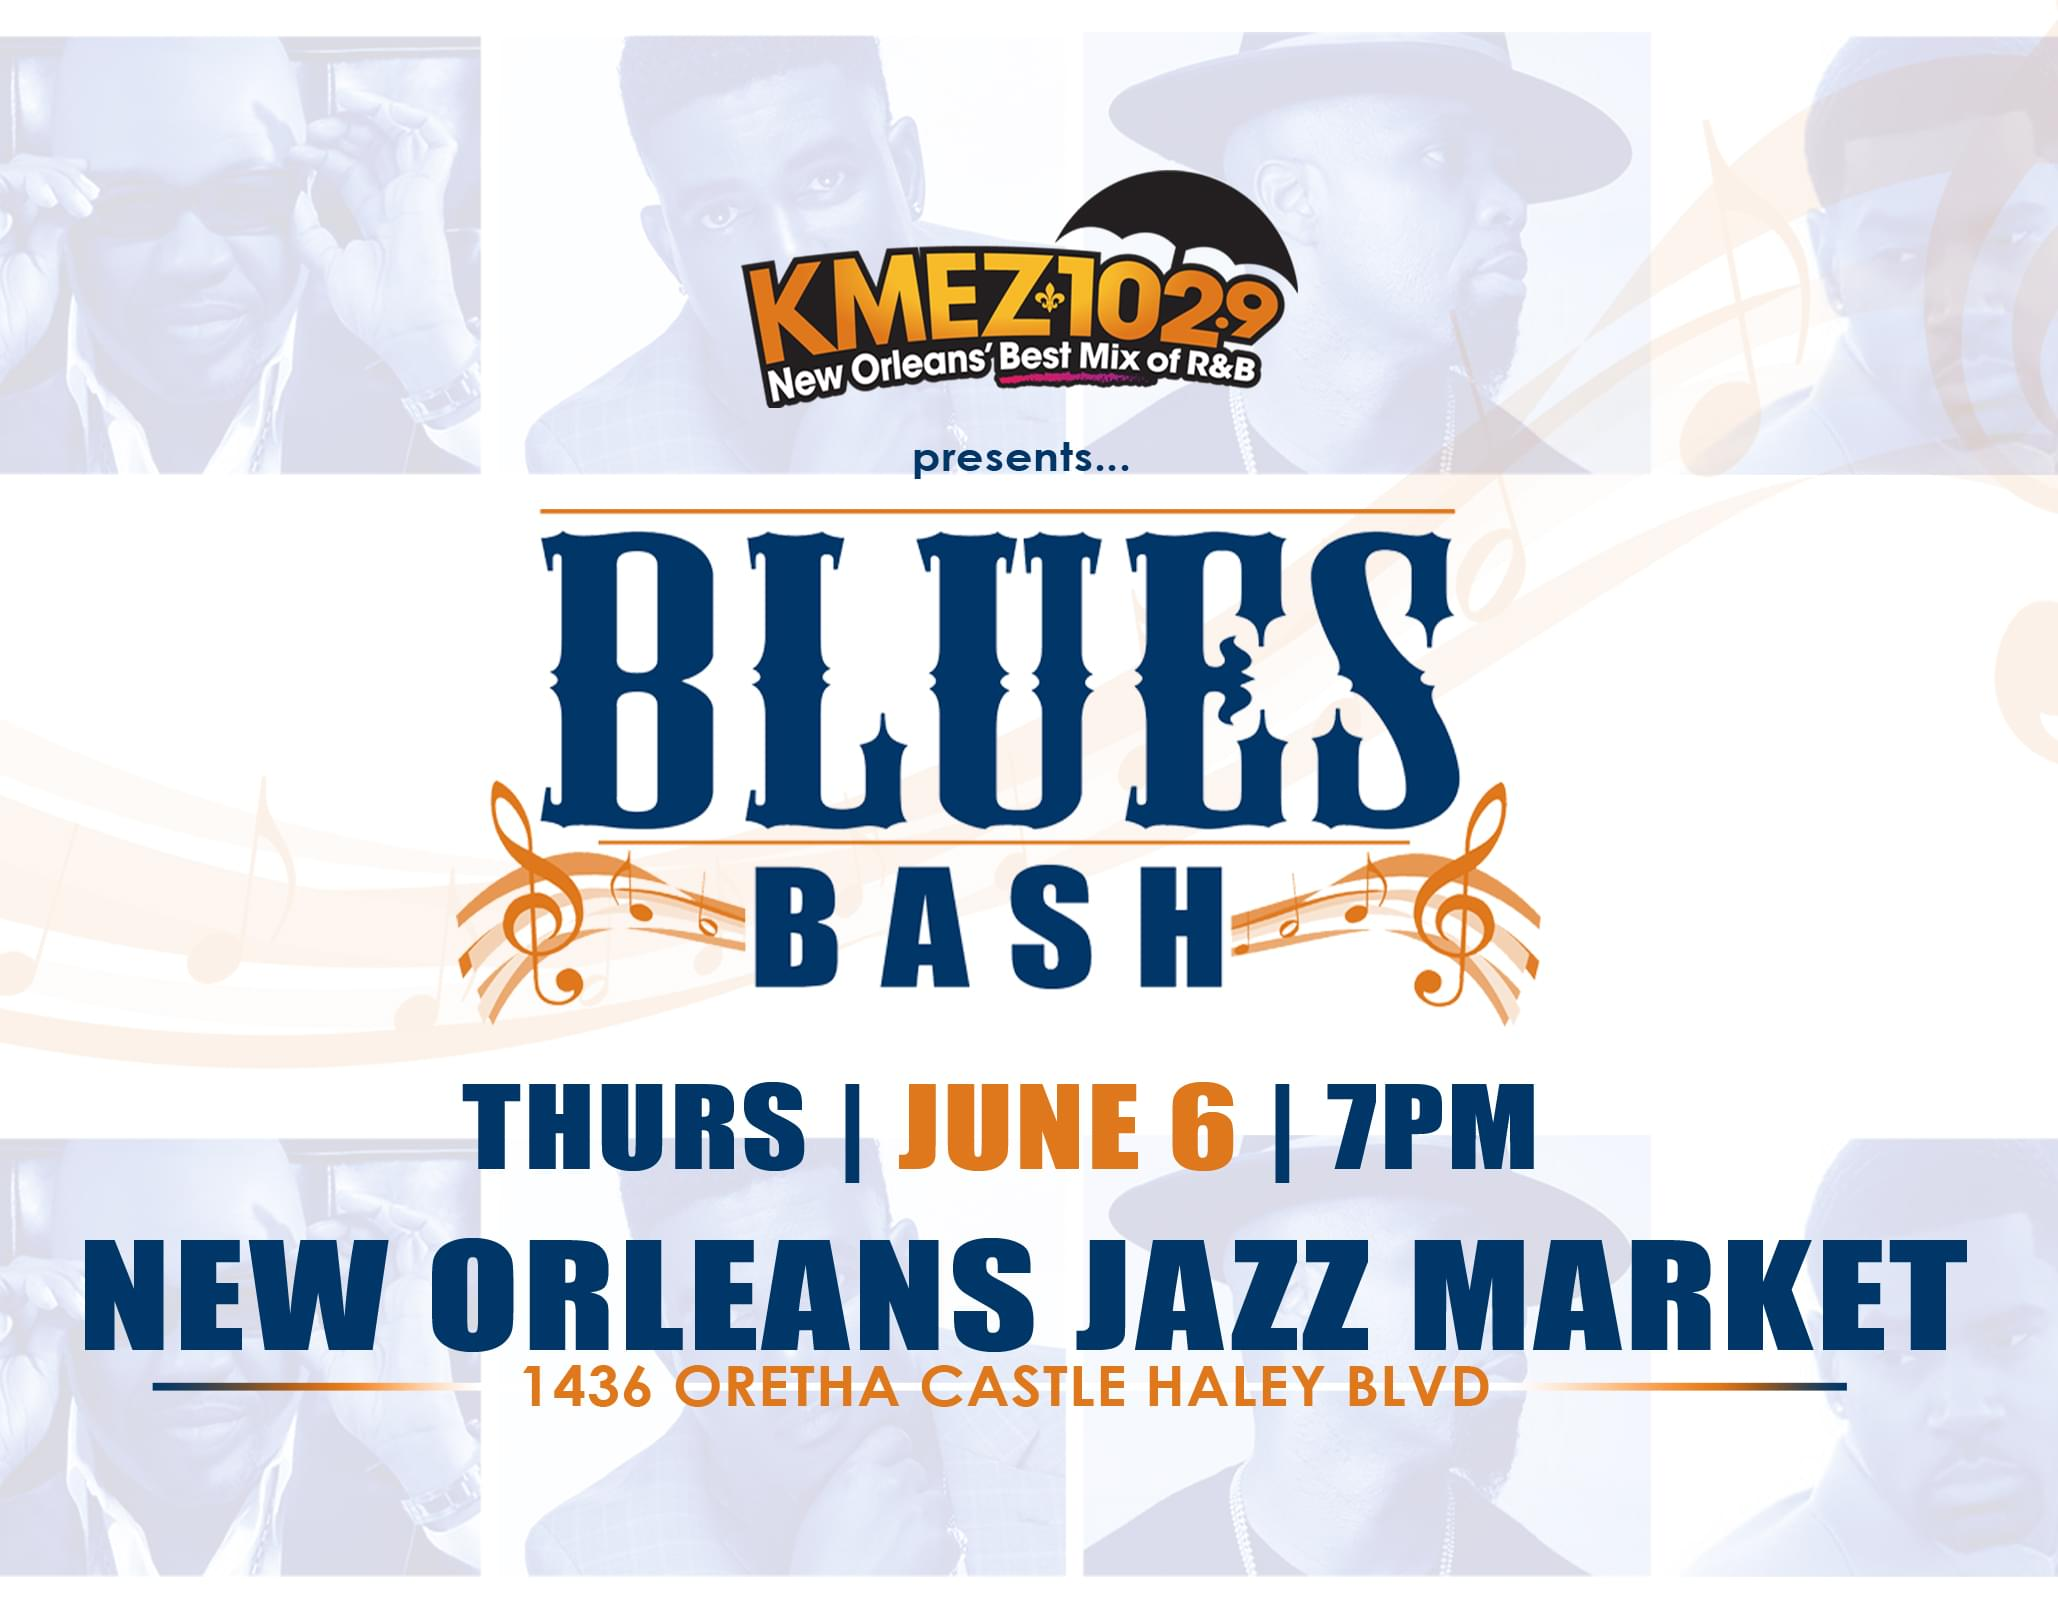 KMEZ 102.9 Blues Bash